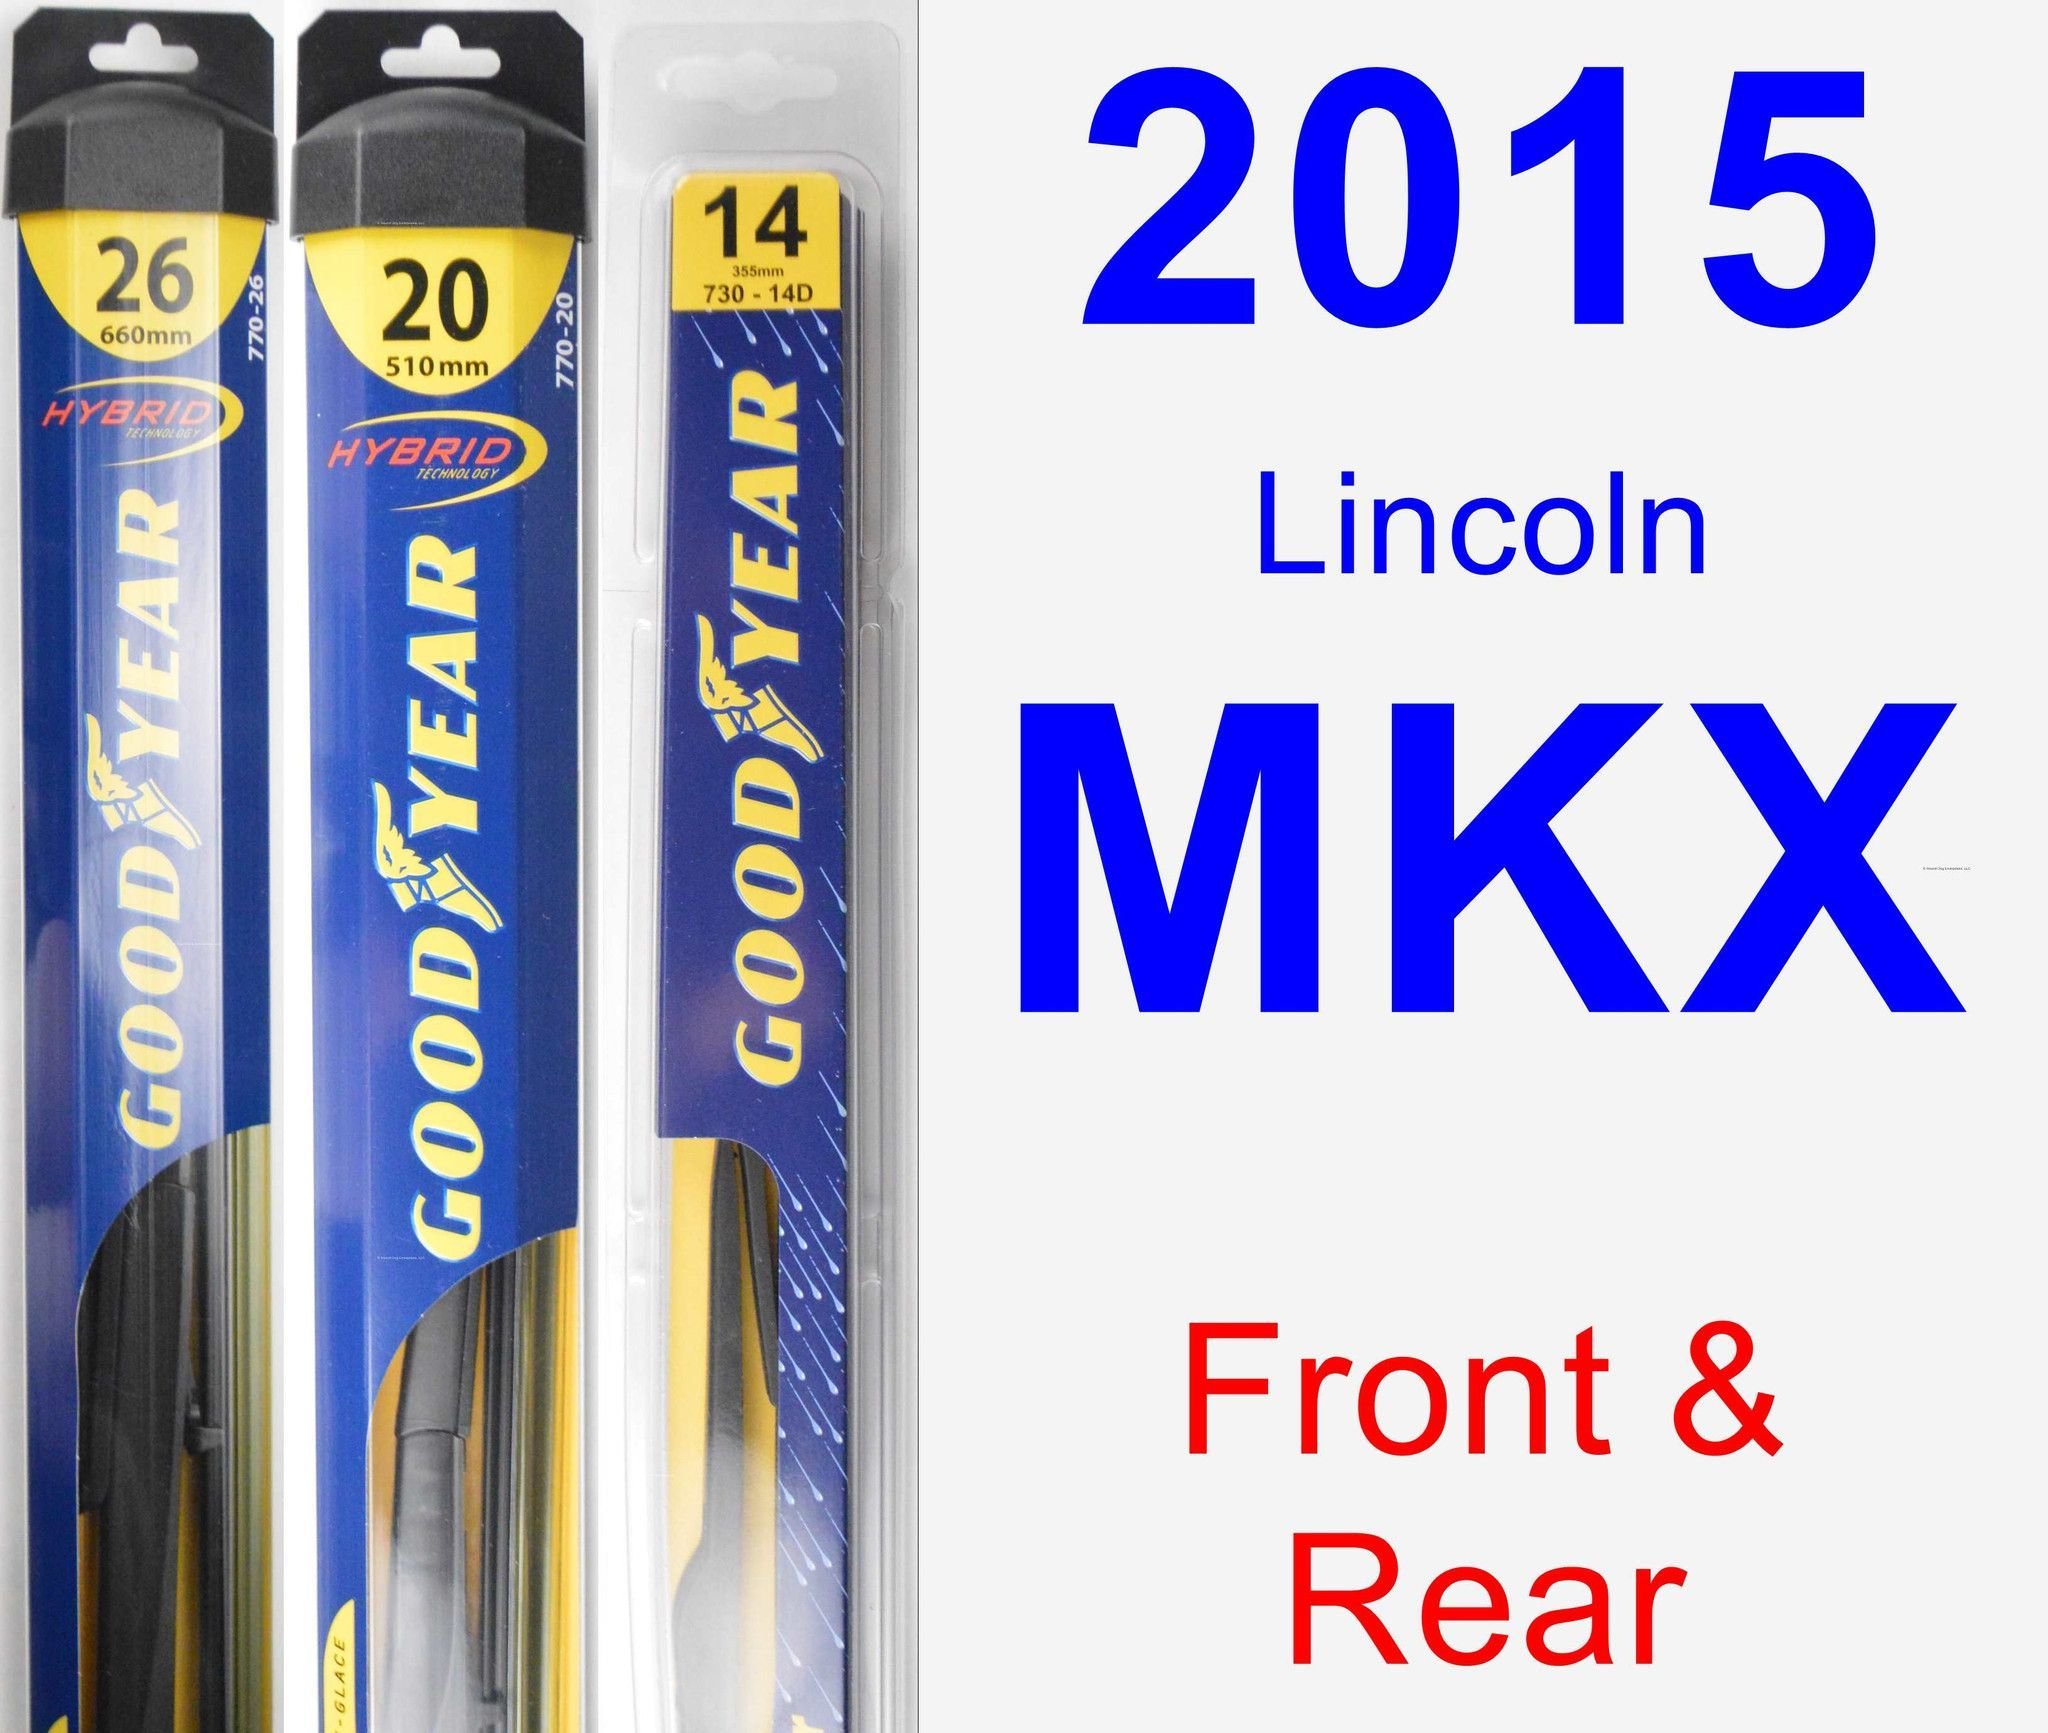 Front & Rear Wiper Blade Pack For 2015 Lincoln MKX